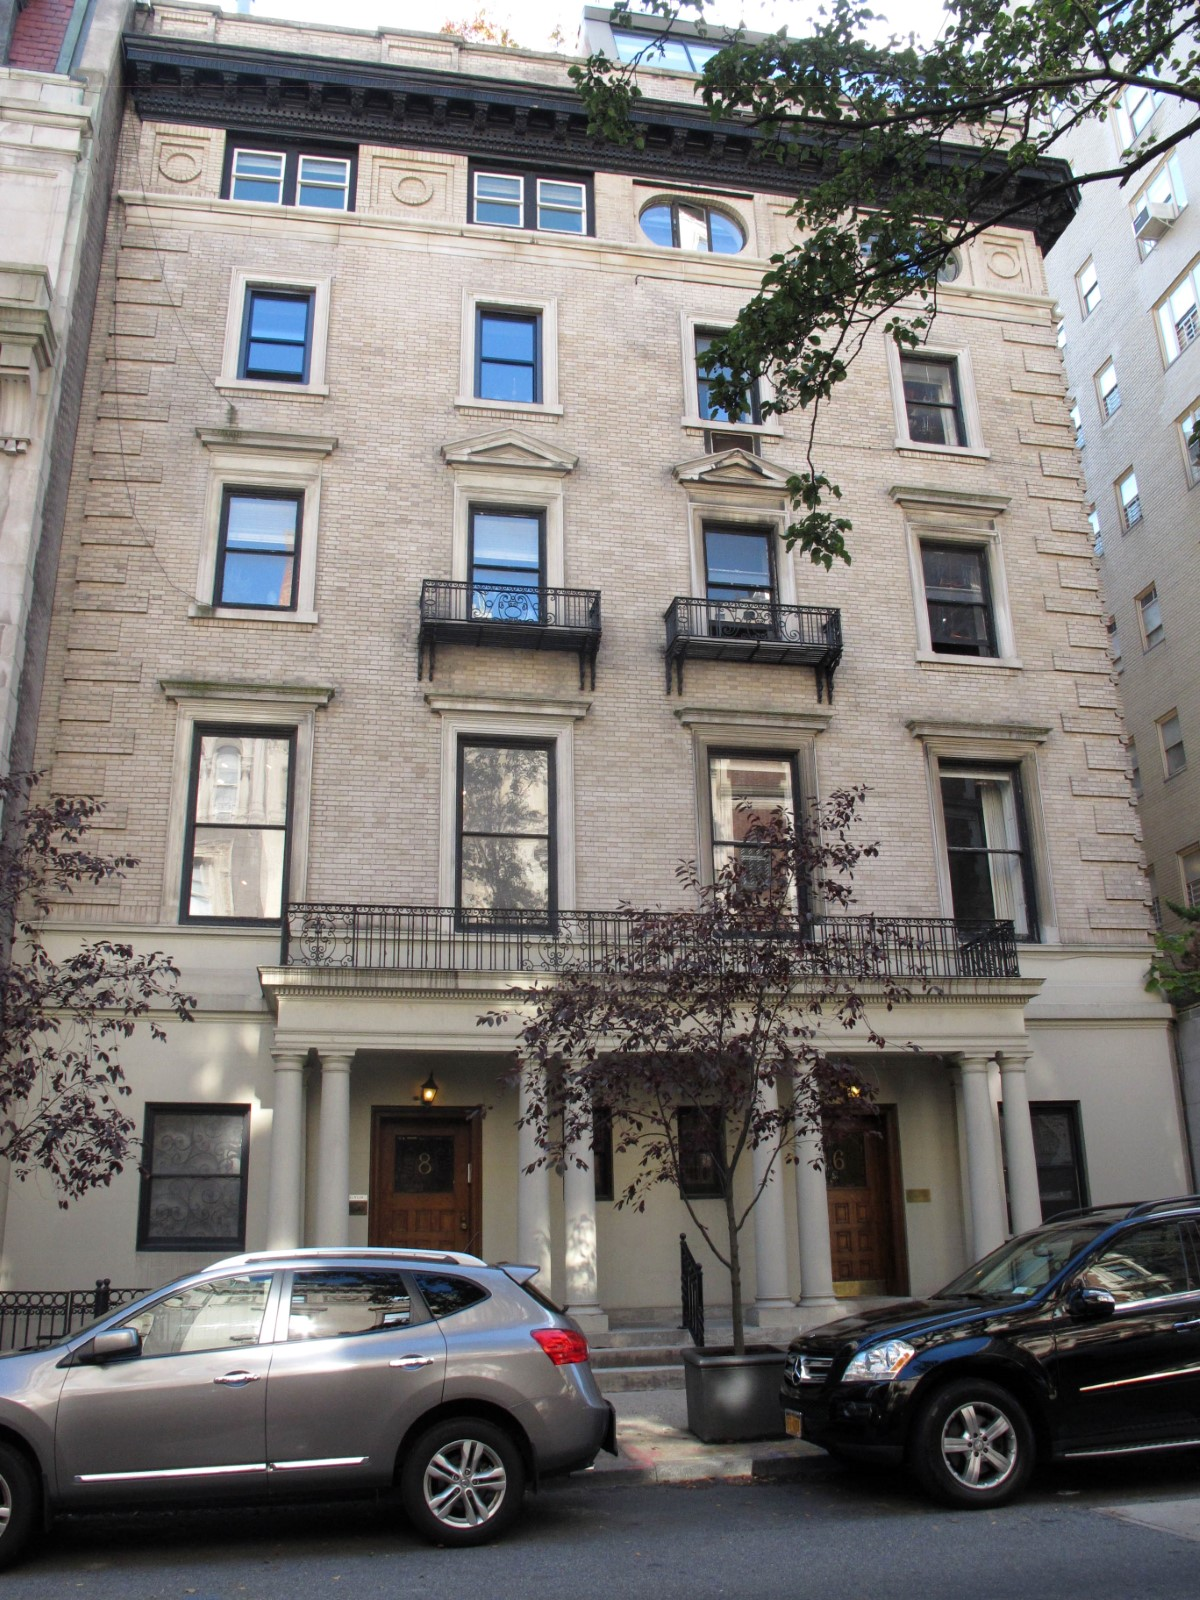 Copropriété pour l Vente à 6 East 76th Street, Apt. 4R 6 East 76th Street Apt 4r Upper East Side, New York, New York 10021 États-Unis